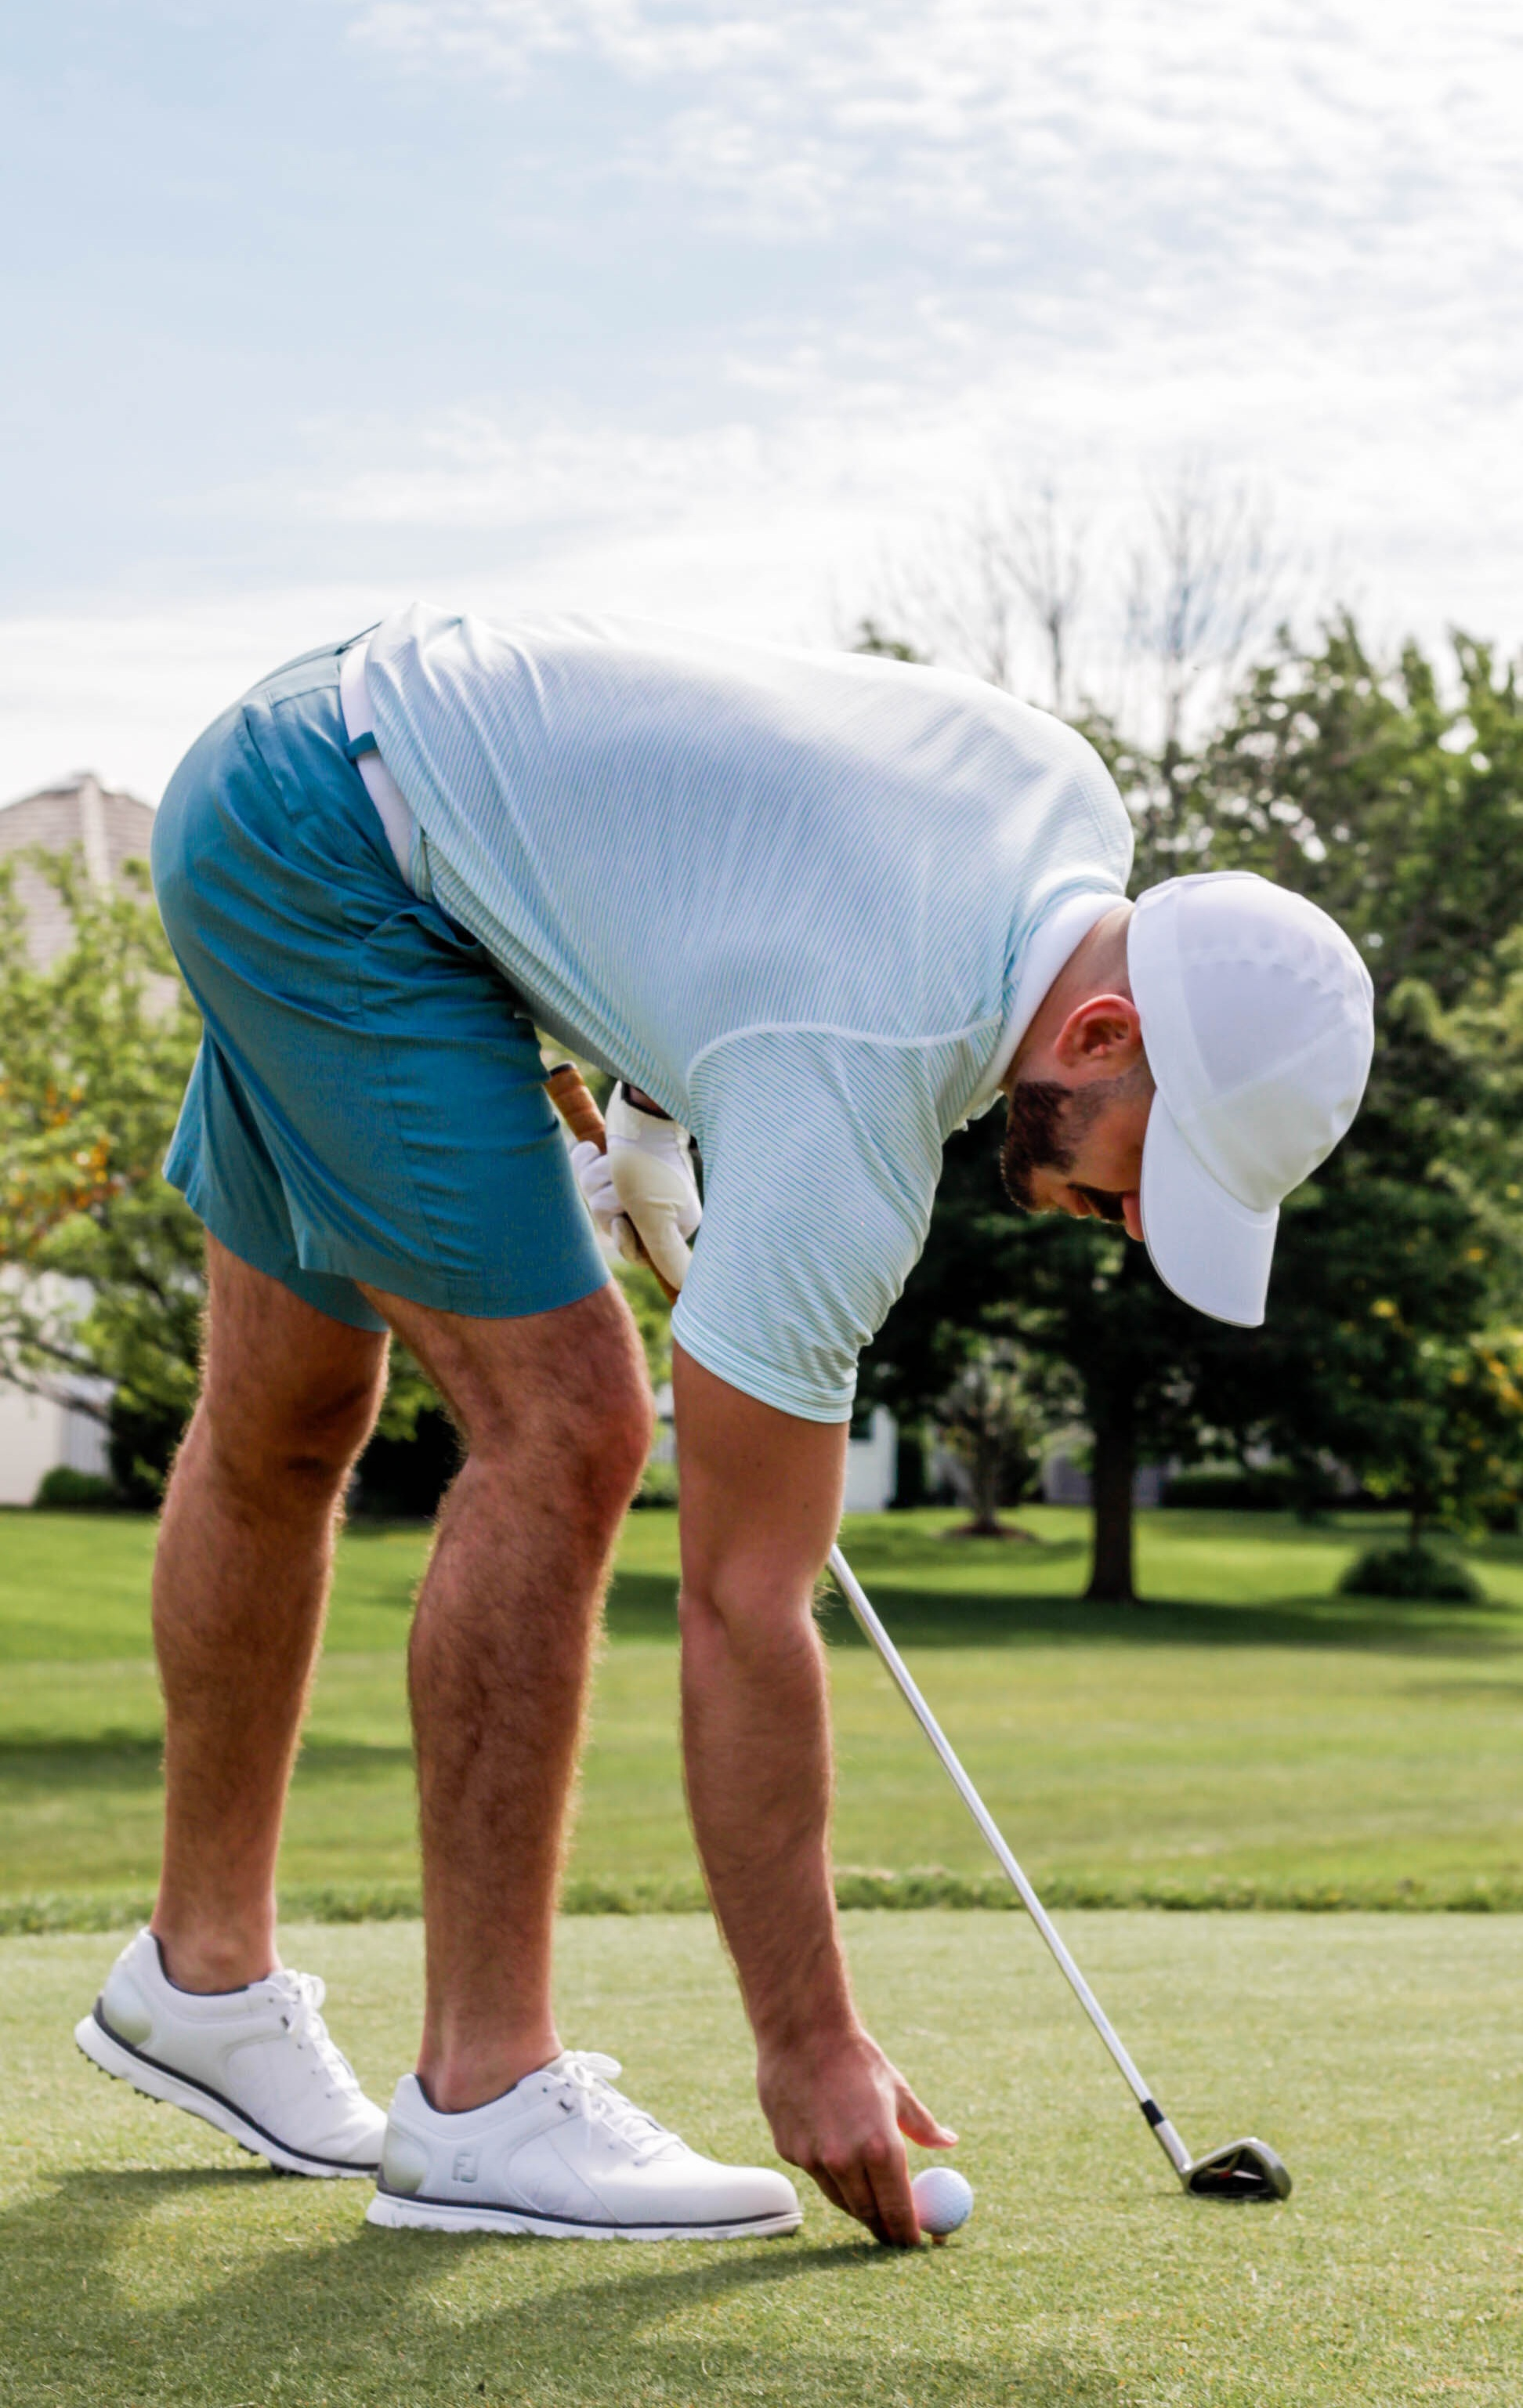 """Wearing: lululemon Commission Short Chino 9"""" Slim in Aquatic Green, Metal Vent Tech Polo in White/Blue/Lime, and Tillinger Poly Hat in White."""